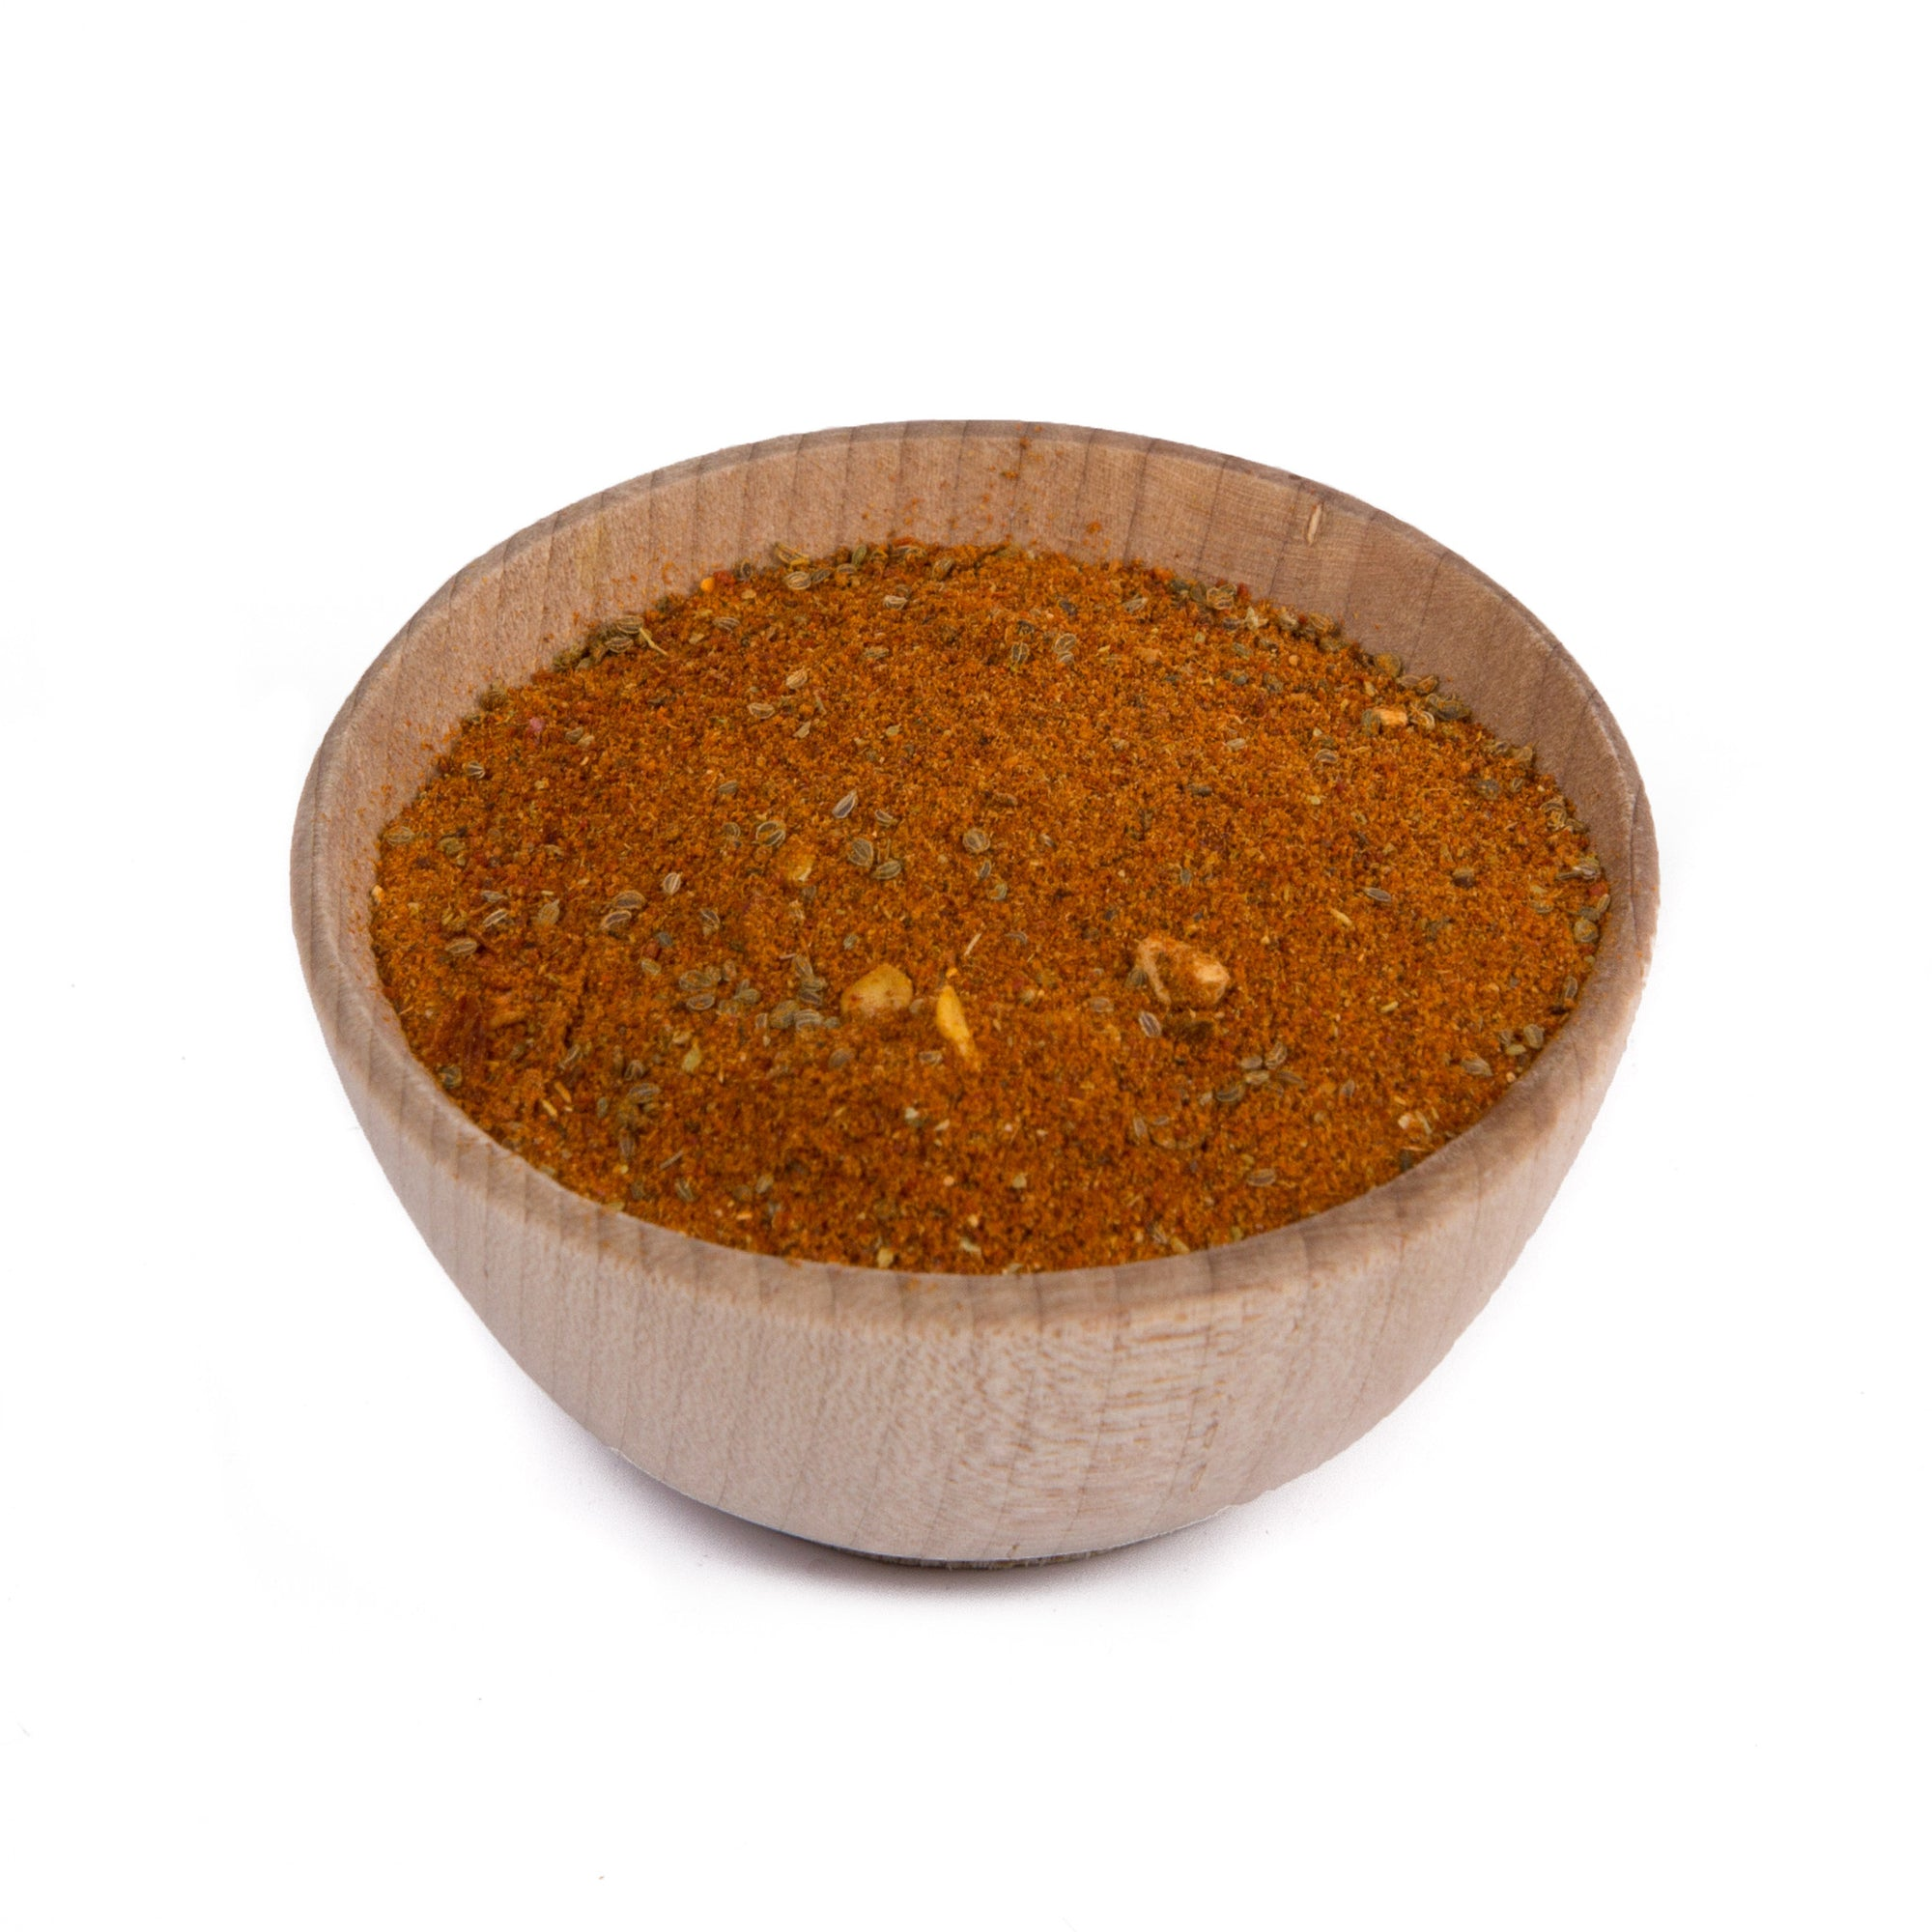 Chackbay Seasoning - Spice Blends - Red Stick Spice Company